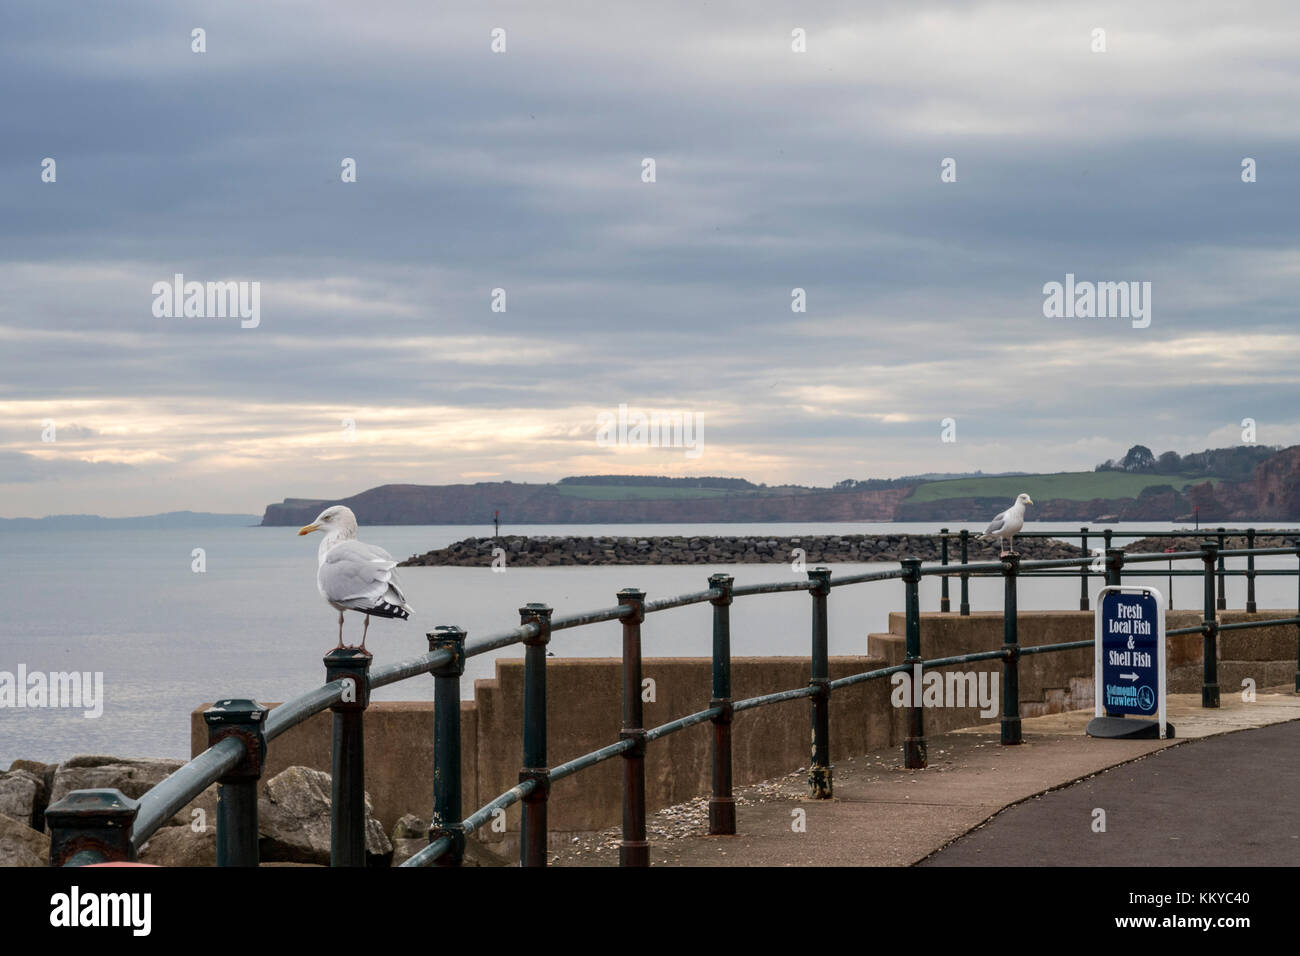 Seagulls (Laridae) on the seafront at Sidmouth, Devon, where it is illegal to feed the birds. - Stock Image